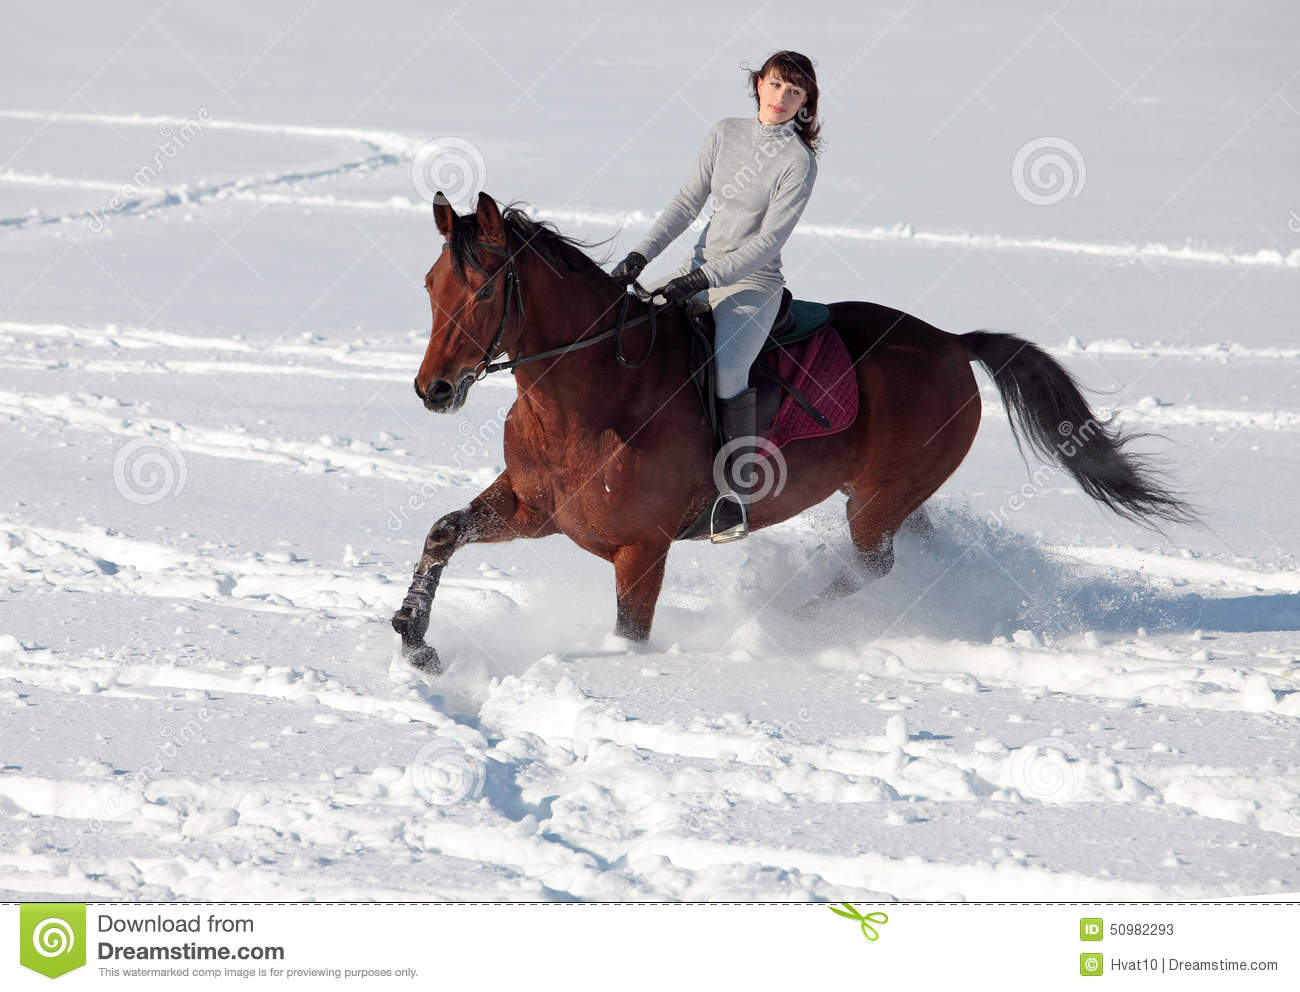 Beautiful Girl Wallpaper Hd 12 Young Woman Horseback Riding On A Snowy Glade Stock Image